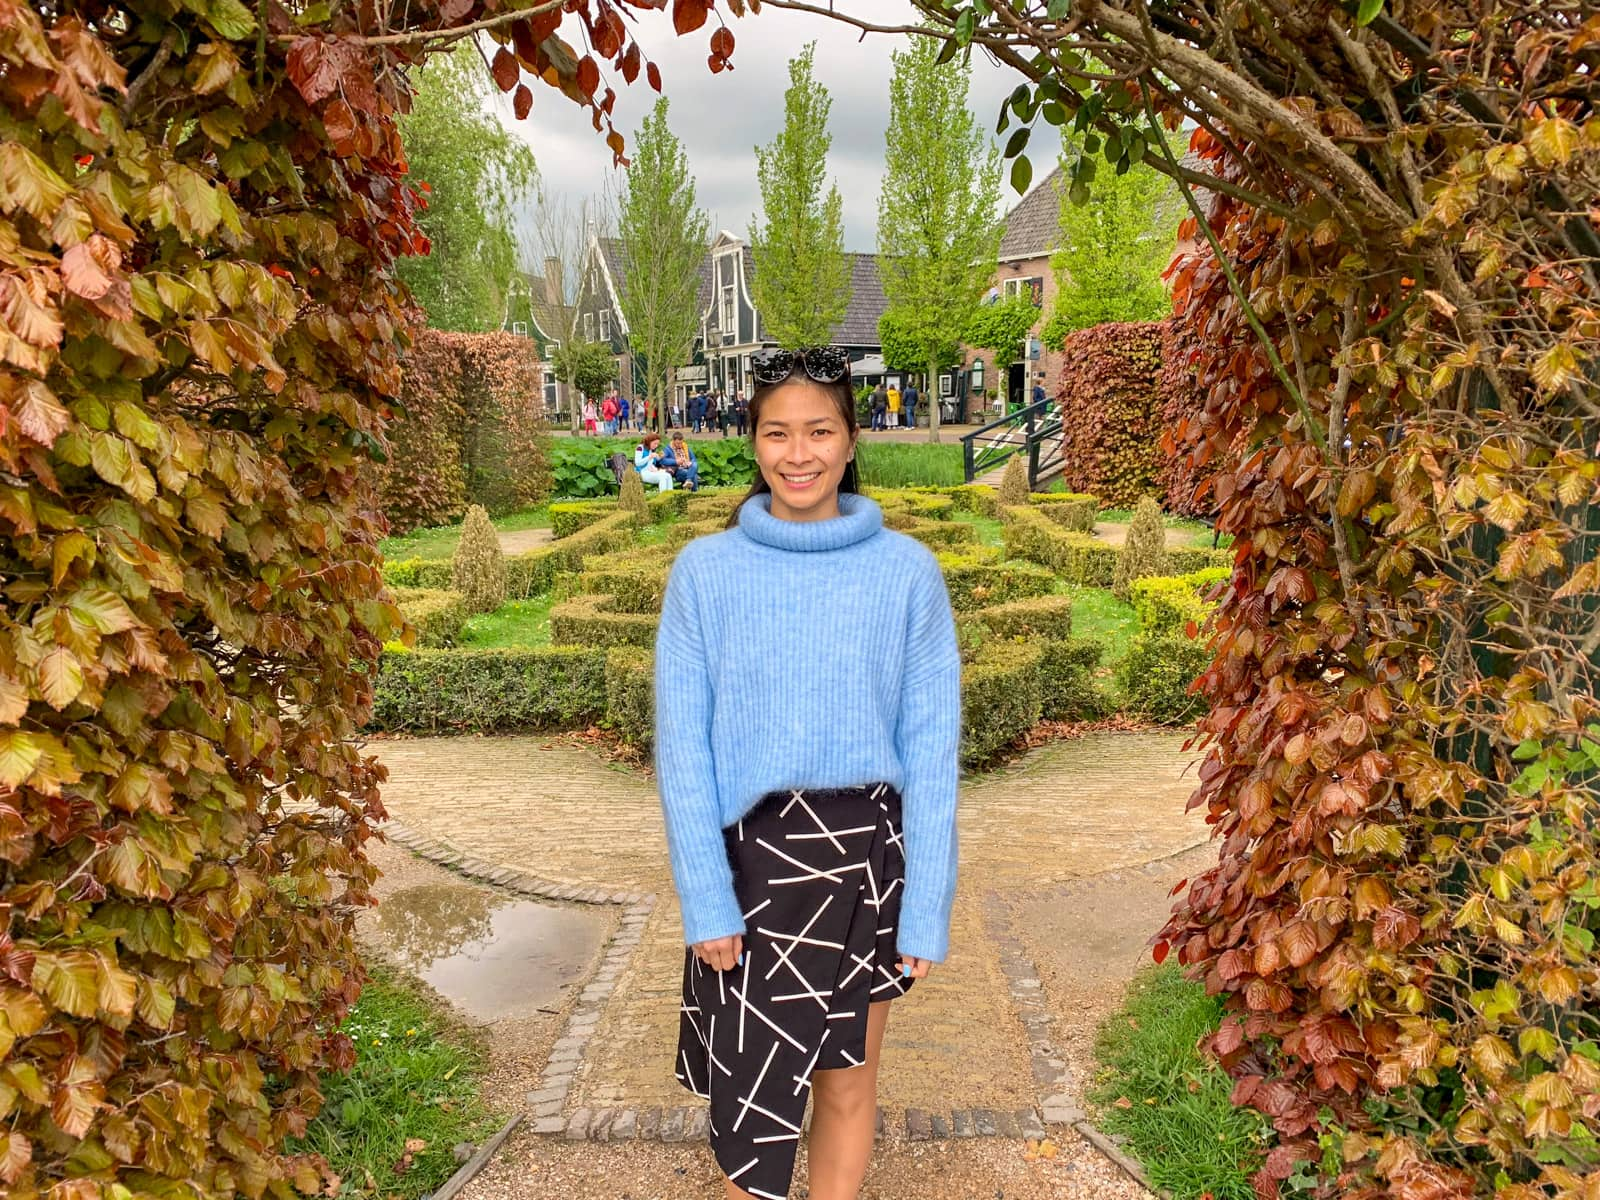 A woman in a blue sweater and black patterned skirt under an hedge arch of red and yellow coloured leaves. In the background is a small green garden maze.